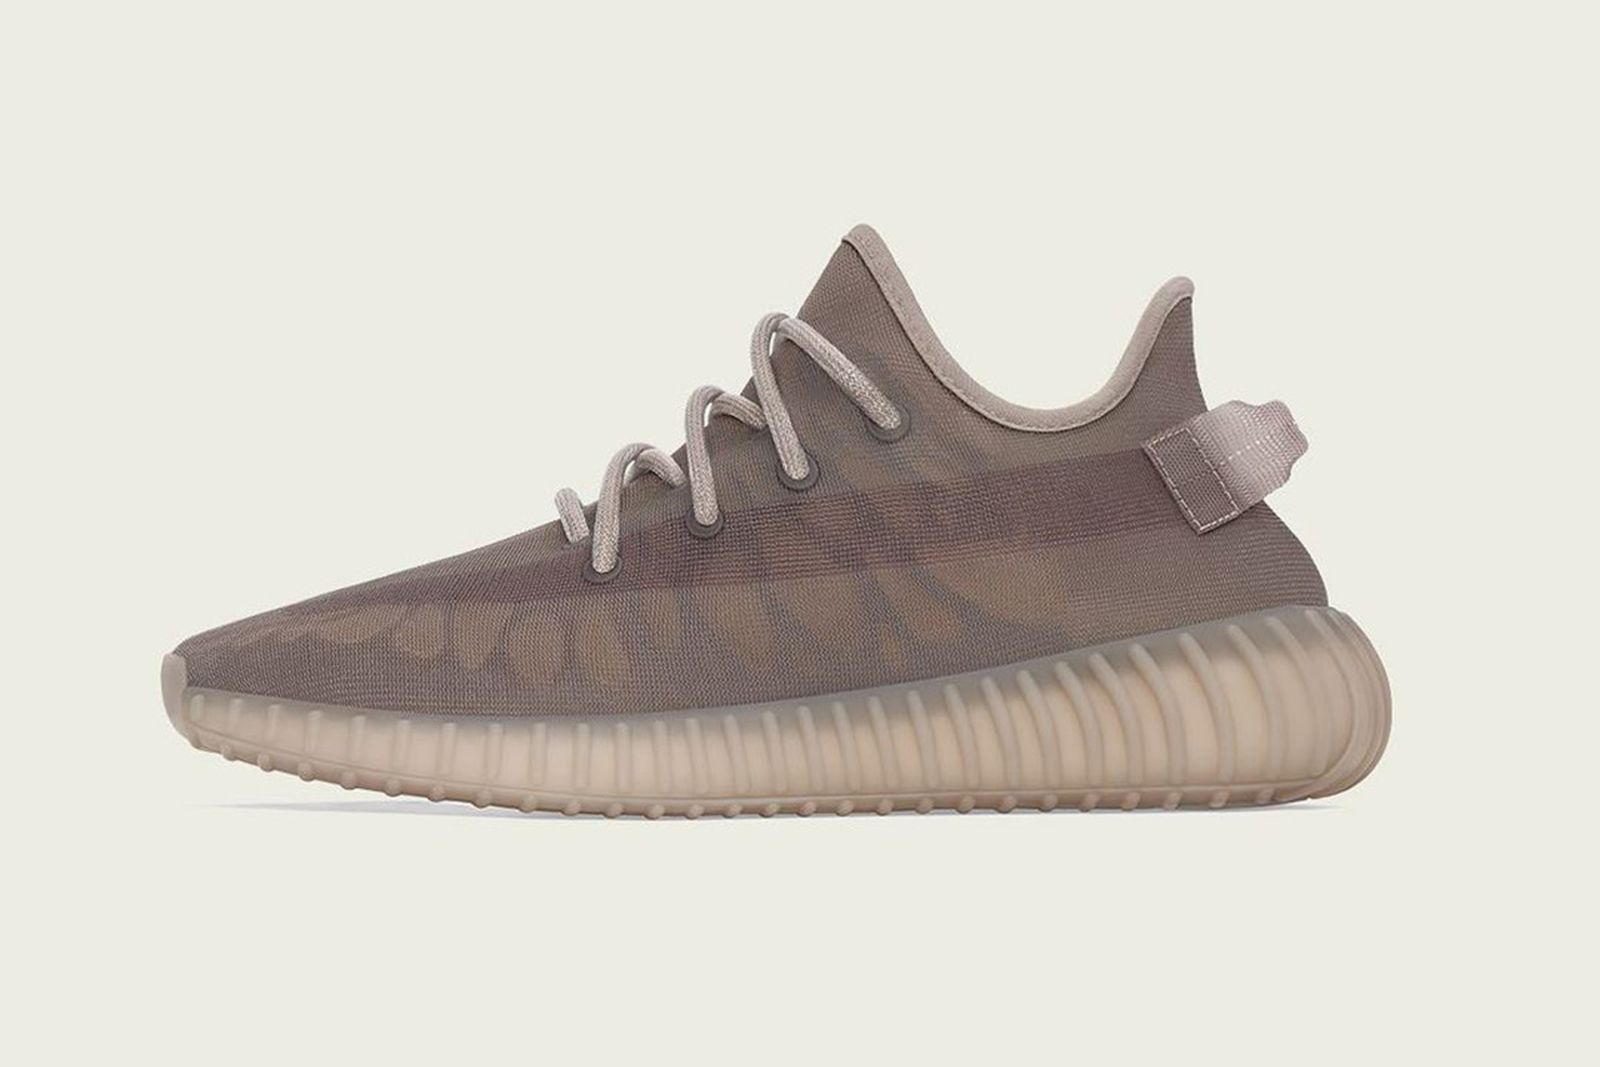 adidas-yeezy-boost-350-v2-mono-pack-release-date-price-01